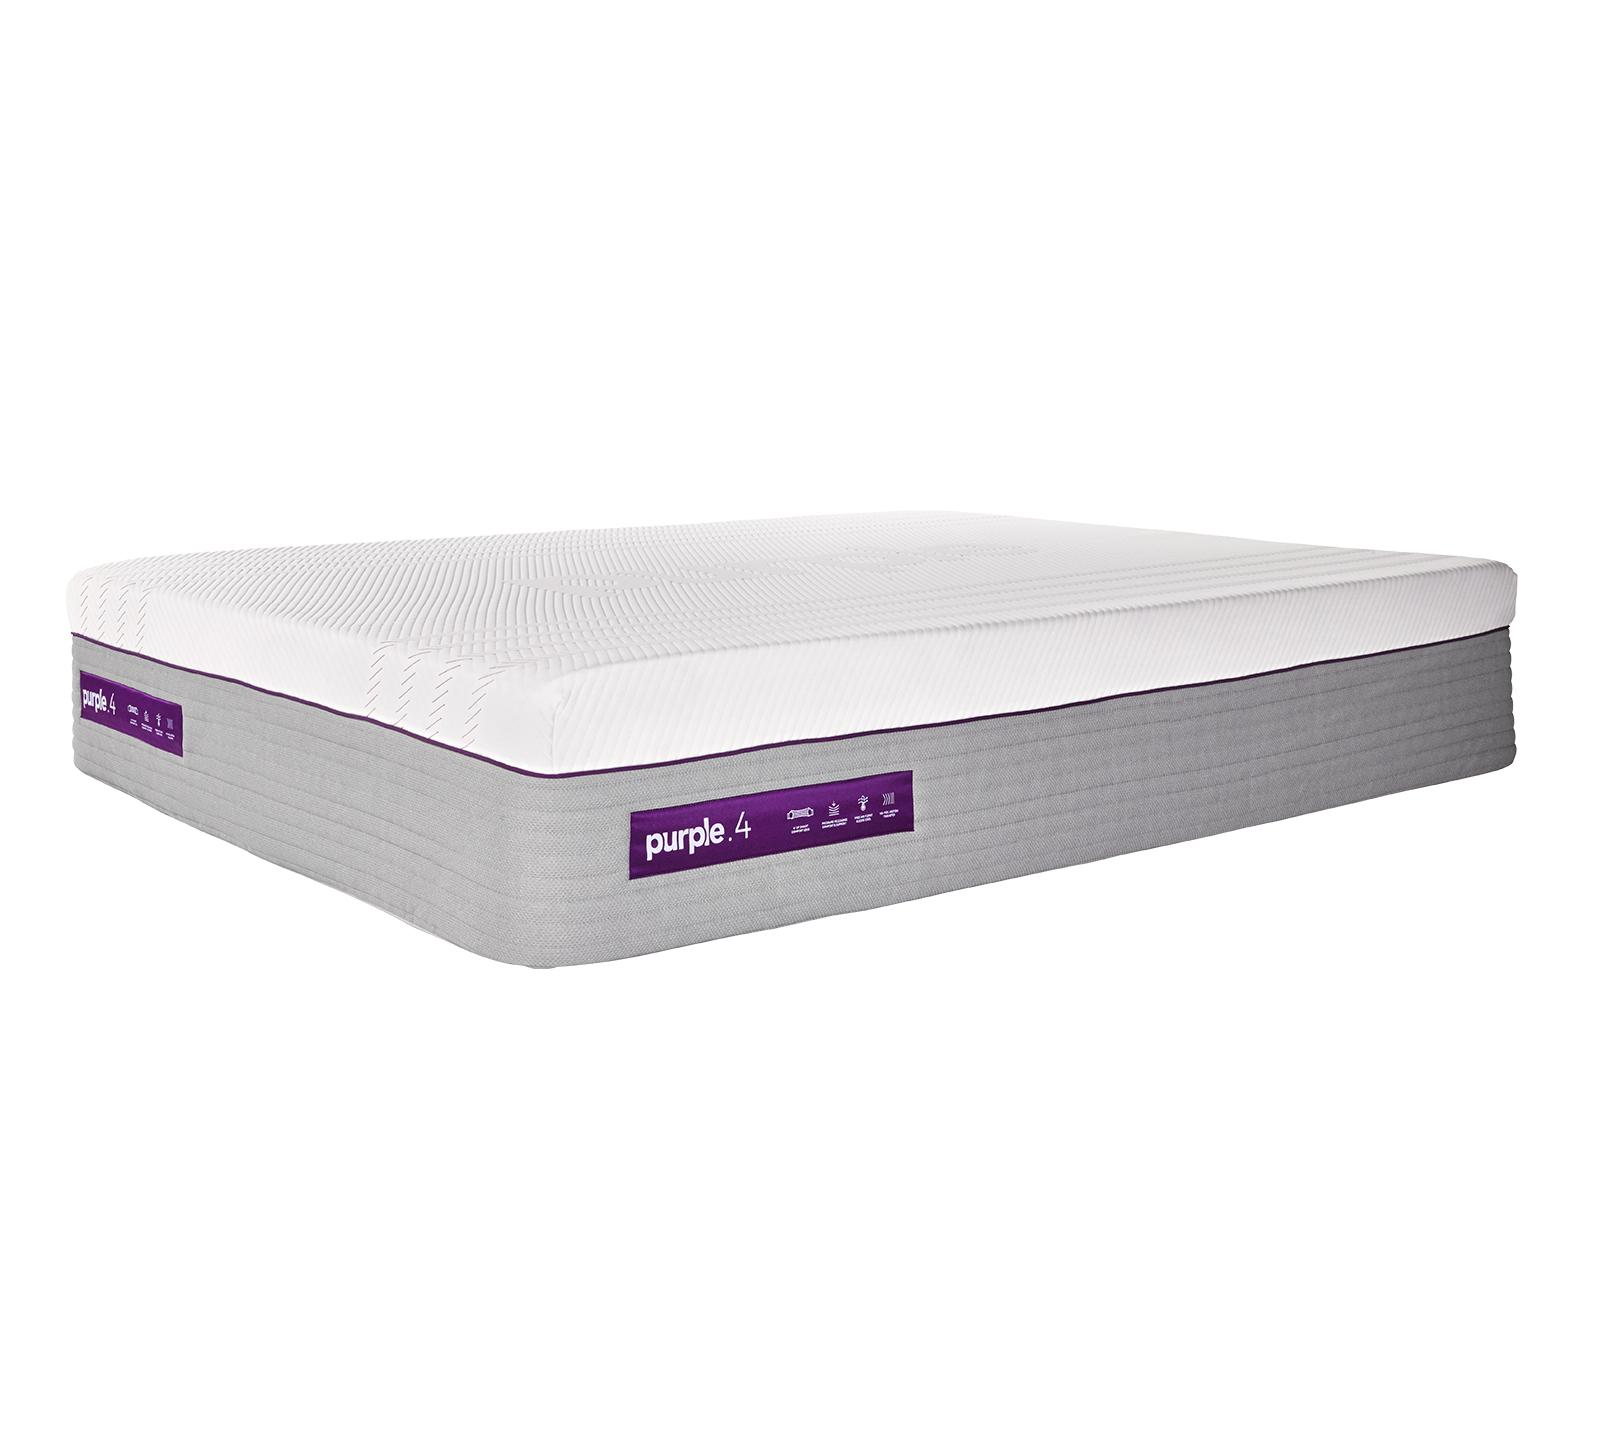 Sleep deeper than ever in the immersive comfort of science. This technological marvel lets you sleep in the lap of luxury with the softest, plushest comfort of the Purple® Bed and the total back support your body craves. The mattress features a top 4-inch layer of the unique patented Smart Comfort Grid™ that dynamically adapts to the human body and stays cool for superior, personalized comfort and better sleep. Additionally, Purple has added a new base layer comprised of individually wrapped responsive-support coils that further enhance the overall comfort, responsiveness, and durability of the mattress. Whatever your sleep position-back, side, stomach, upside down-with the Purple .4 mattress you'll wake up with all the energy you need to make your wildest dreams come true, but you'll be so comfy you may never want to leave your bed again.